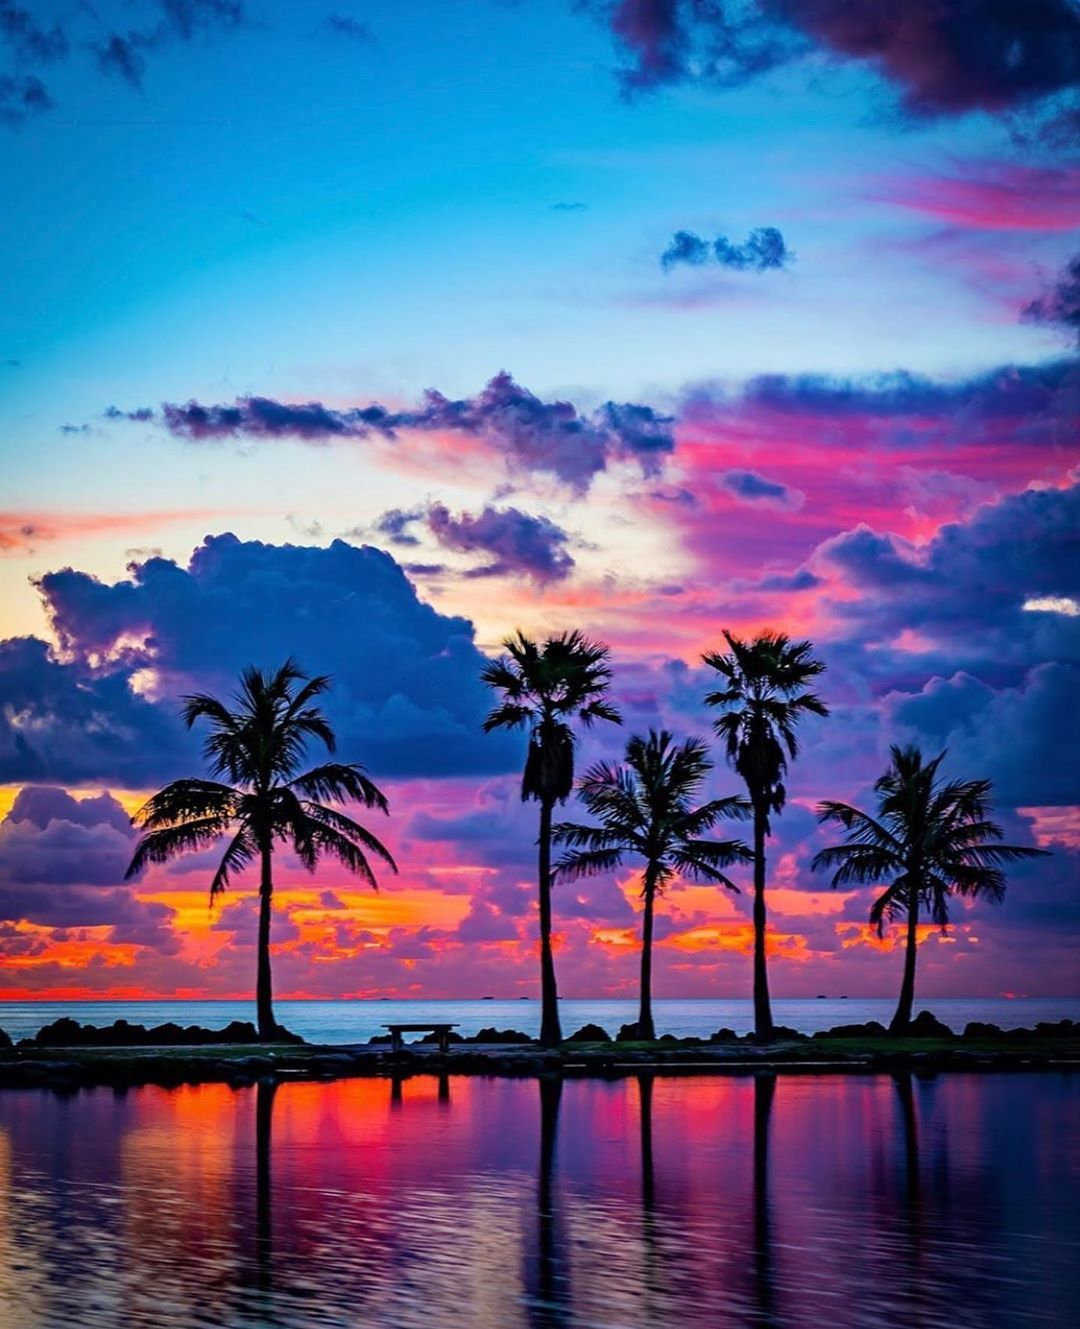 Roam Florida On Instagram Today S Roamer Is Oaliving Chosen By Activitymonster Show Some Love To The Sky Aesthetic Scenery Wallpaper Sunset Pictures